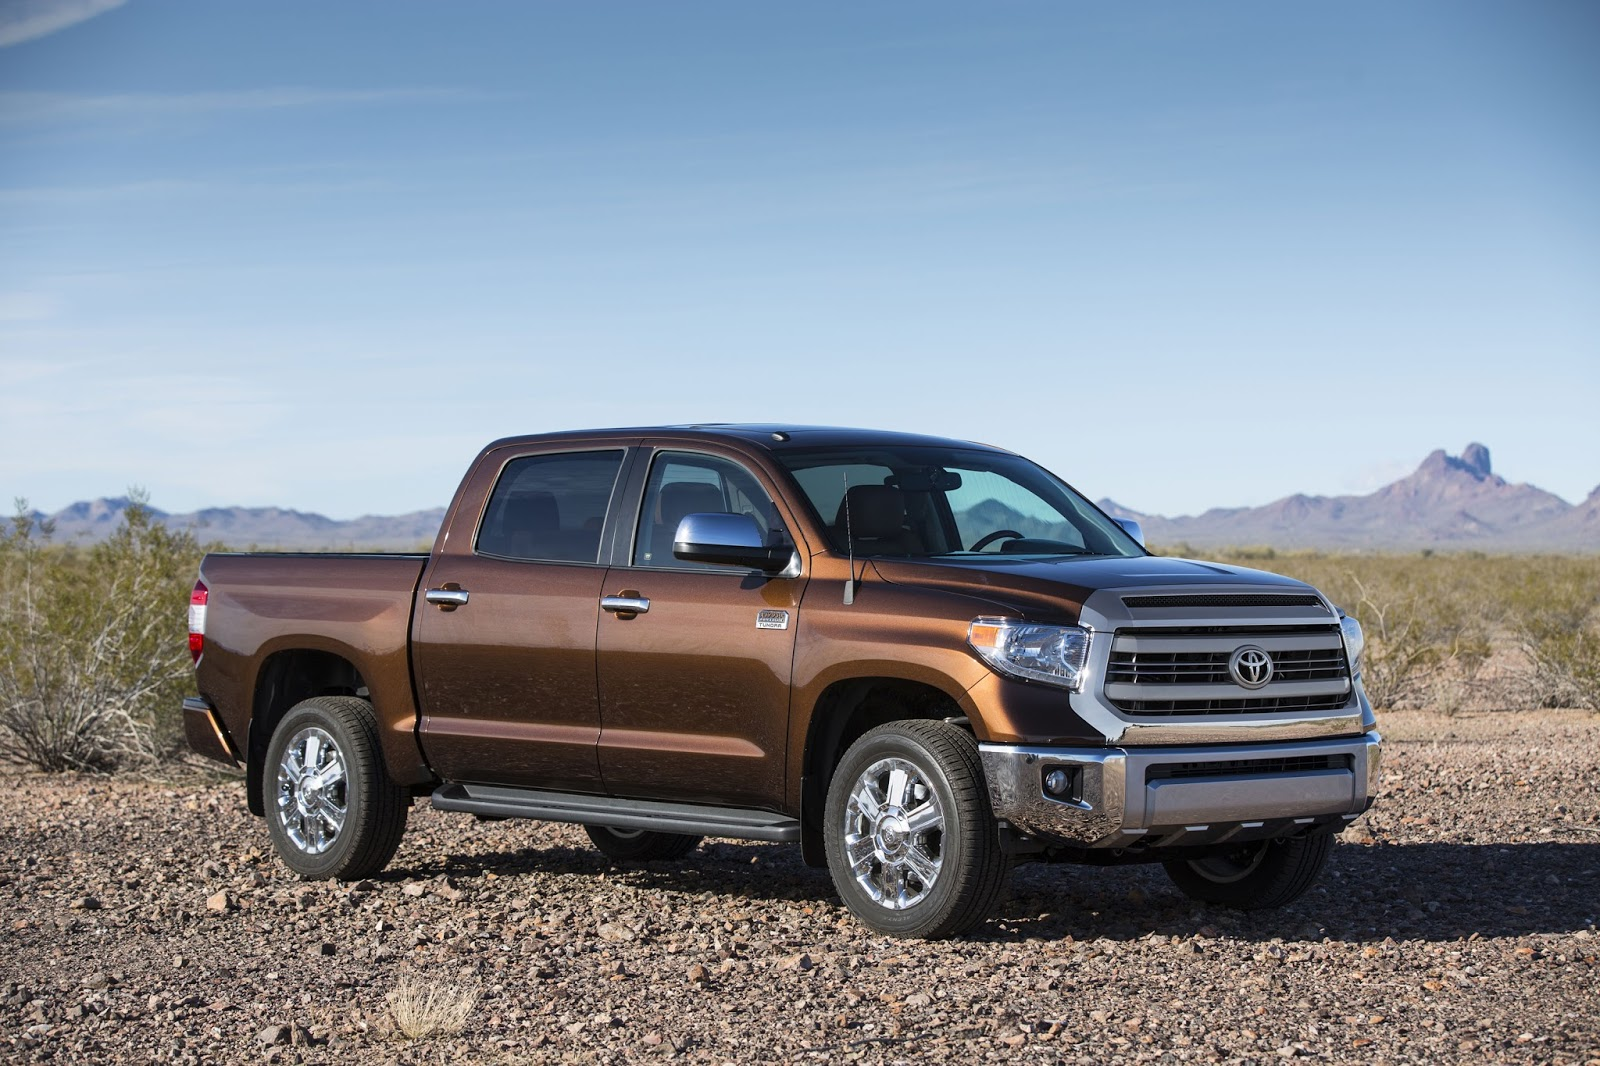 Still Wondering: The 2016 Toyota Tundra 1794 CrewMax